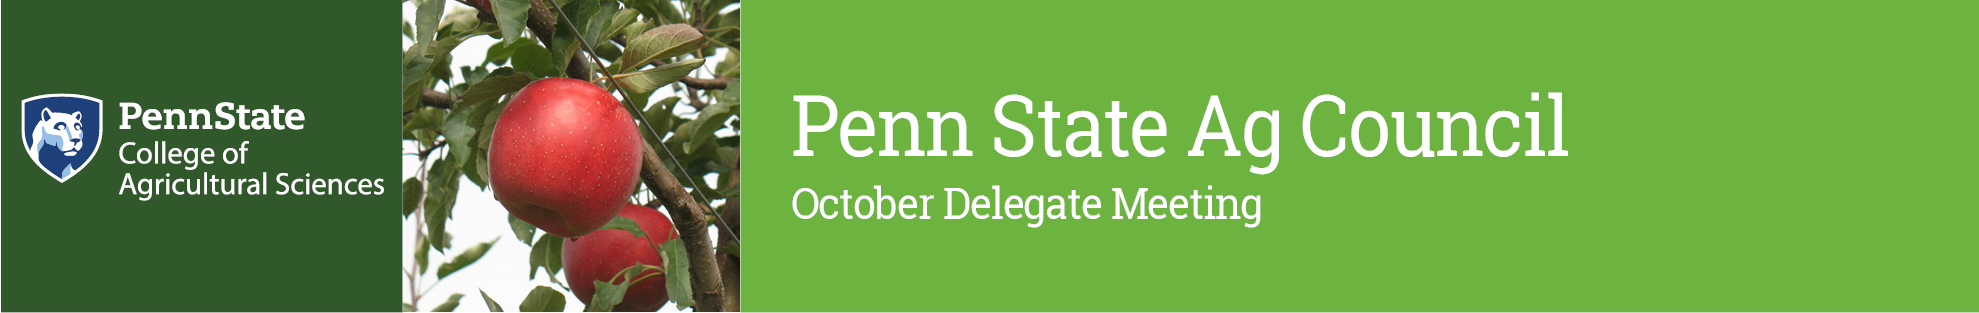 2017 Penn State Ag Council October Delegate Meeting